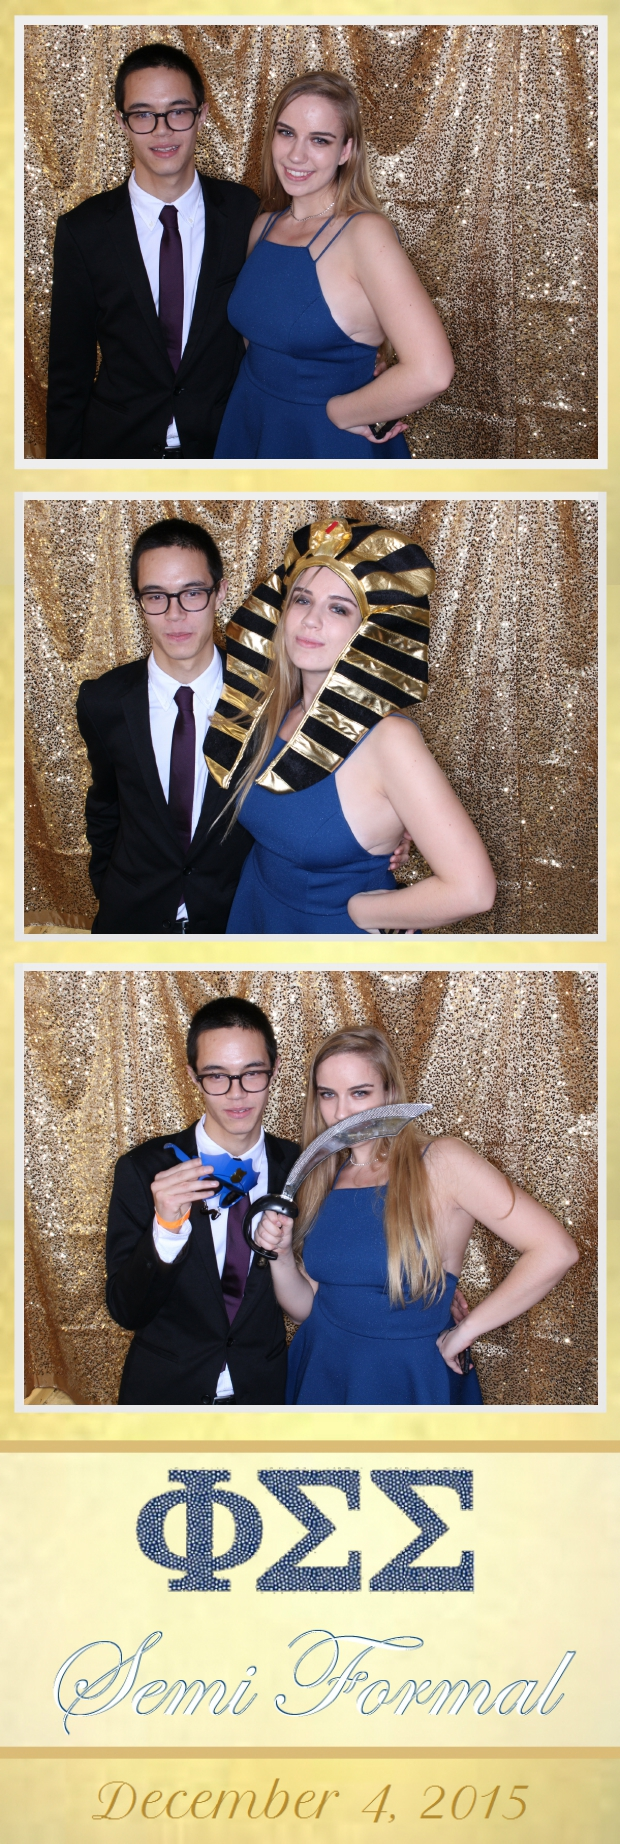 Guest House Events Photo Booth Phi Sigma Sigma Semi Formal (47).jpg